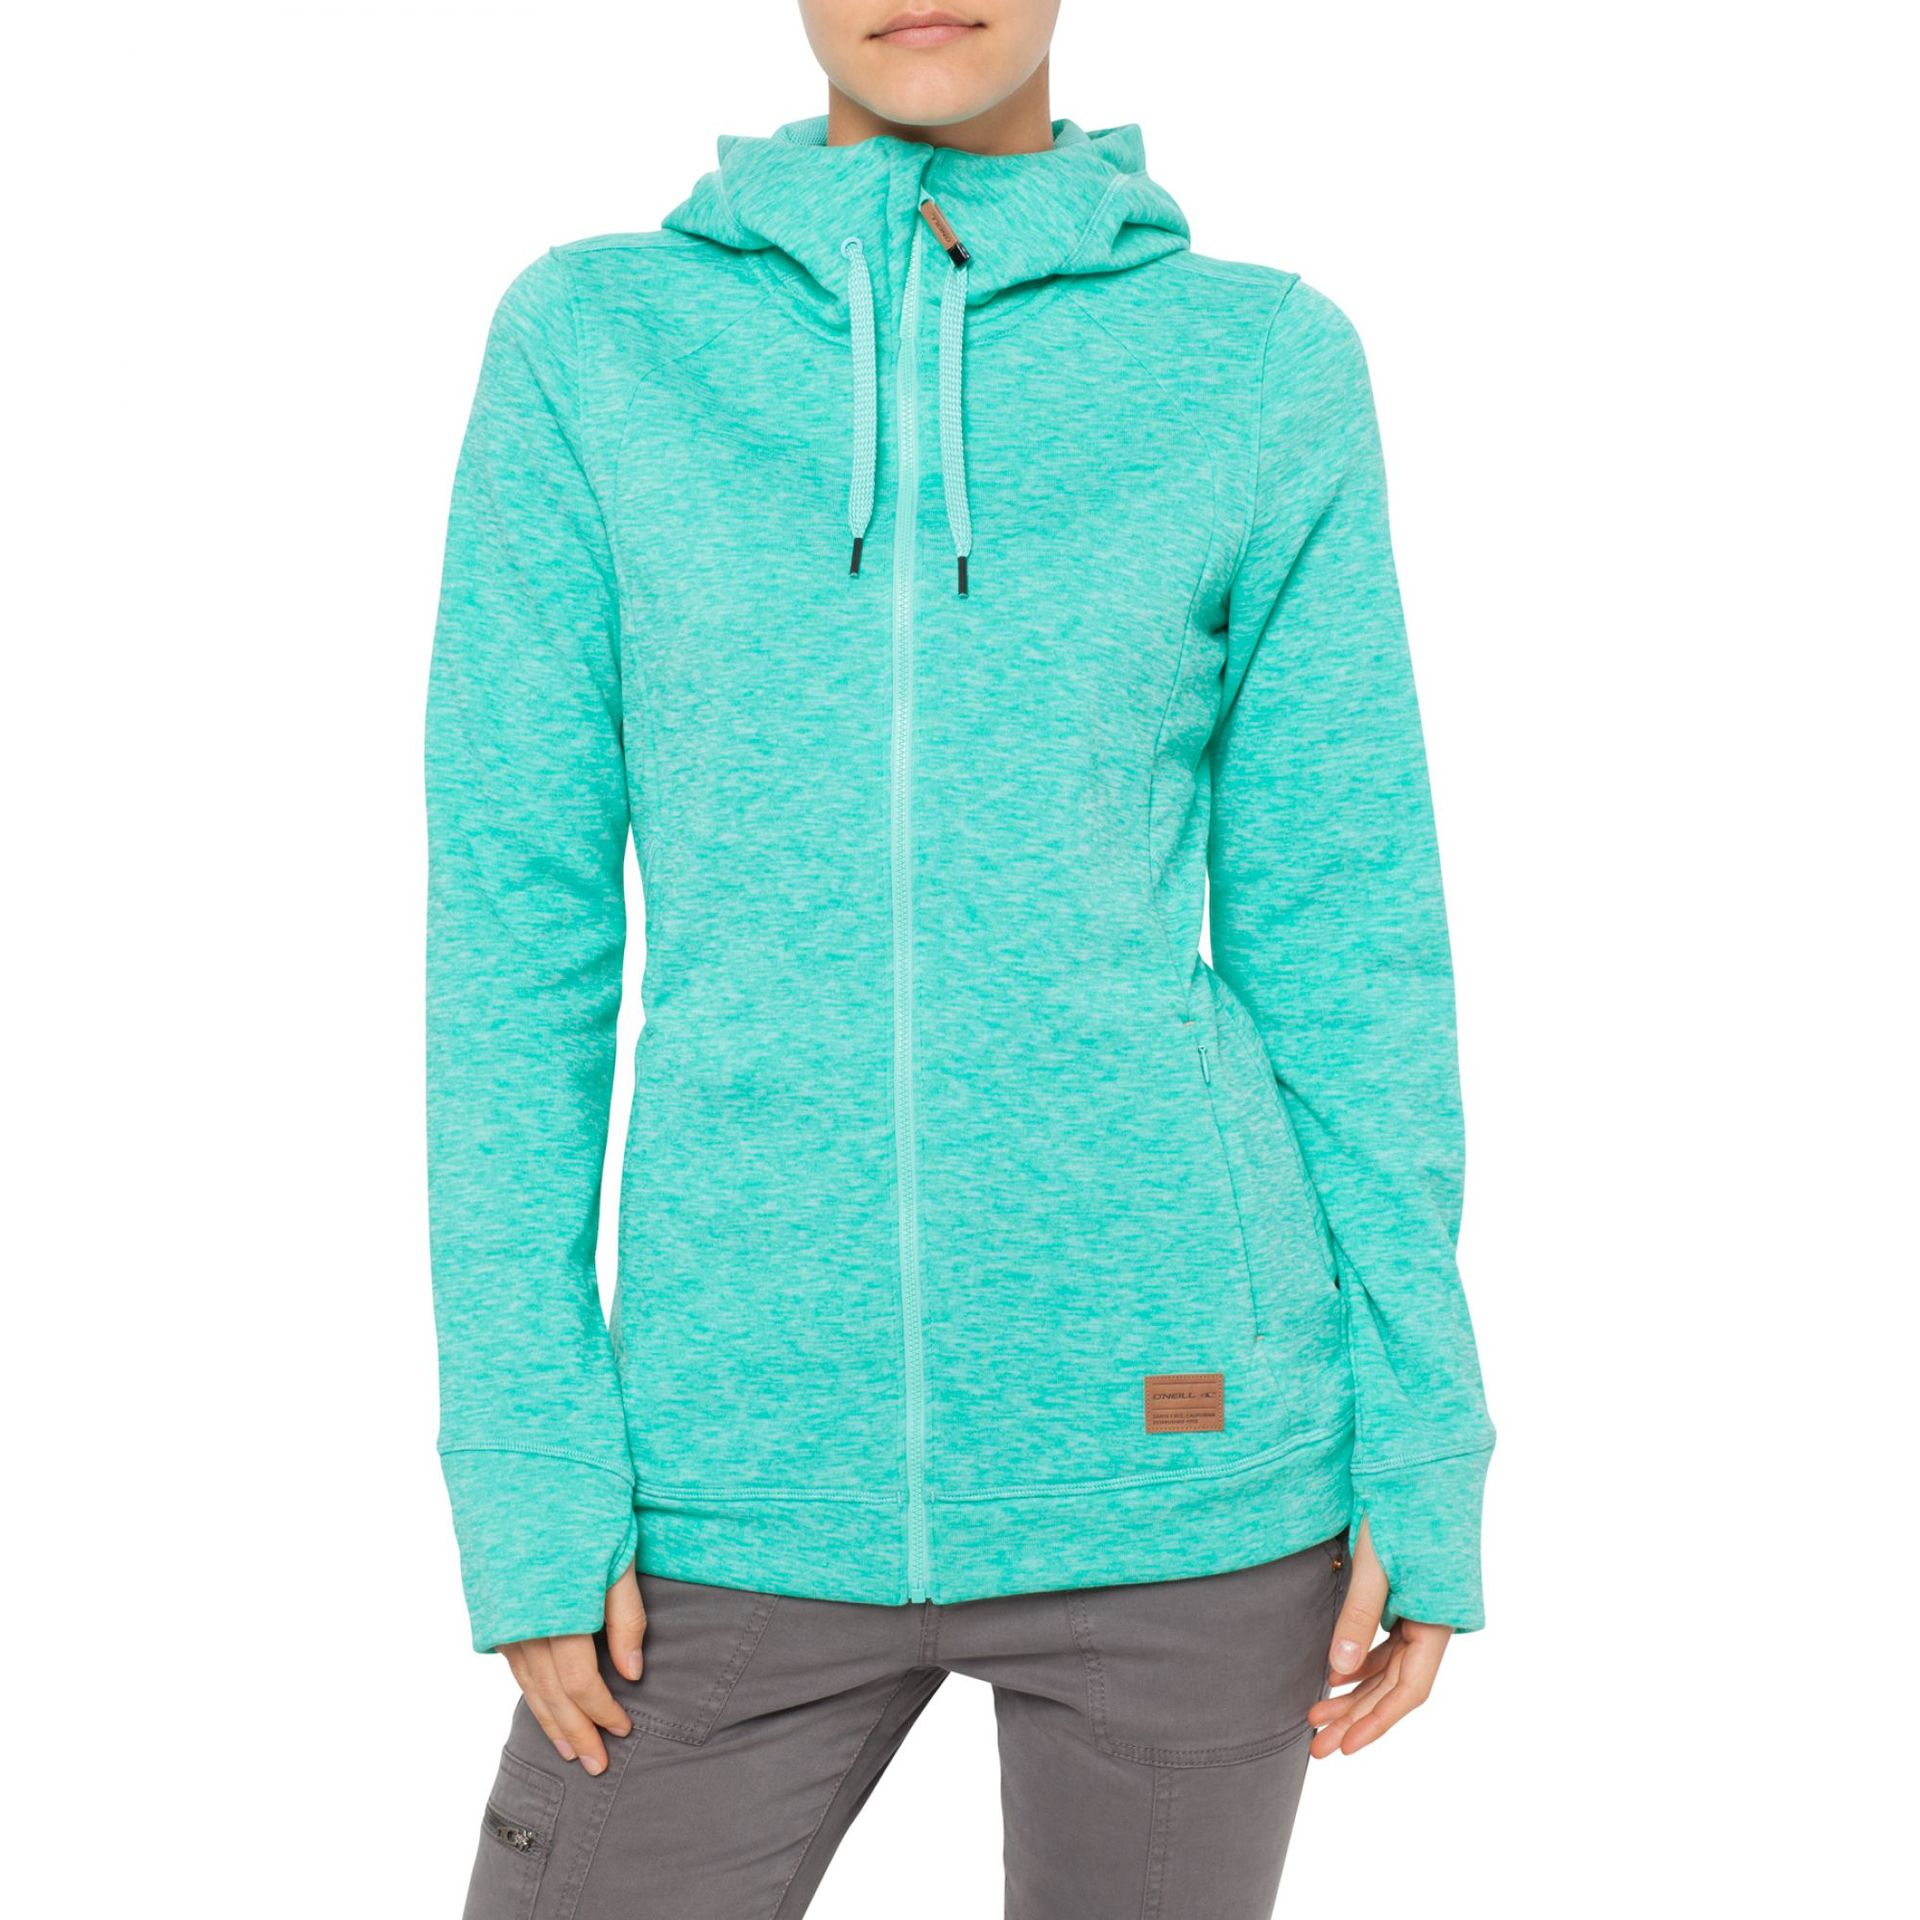 BLUZA ONEILL FZ HOODY FLEECE SPEARMINT